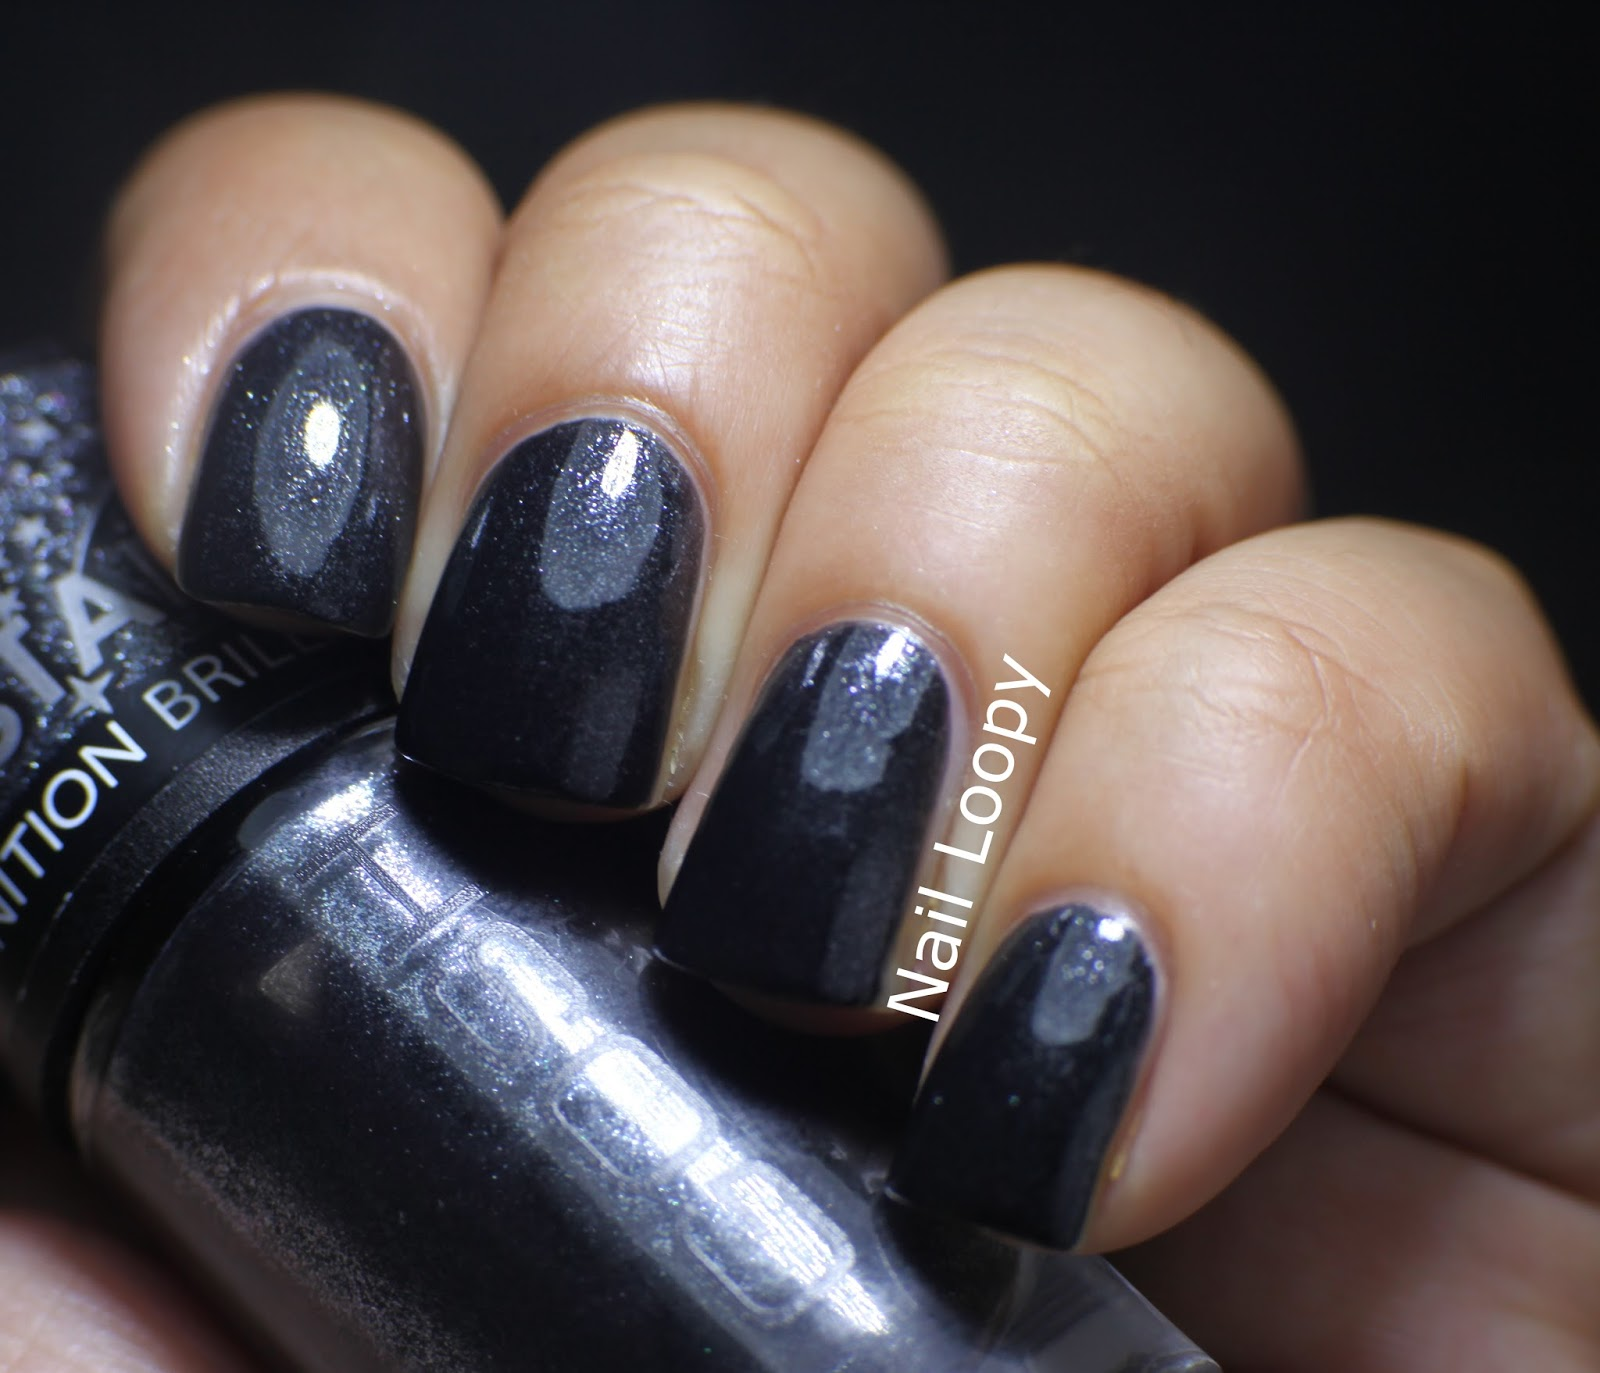 nail loopy: GOSH STARDUST COLLECTION AW 14